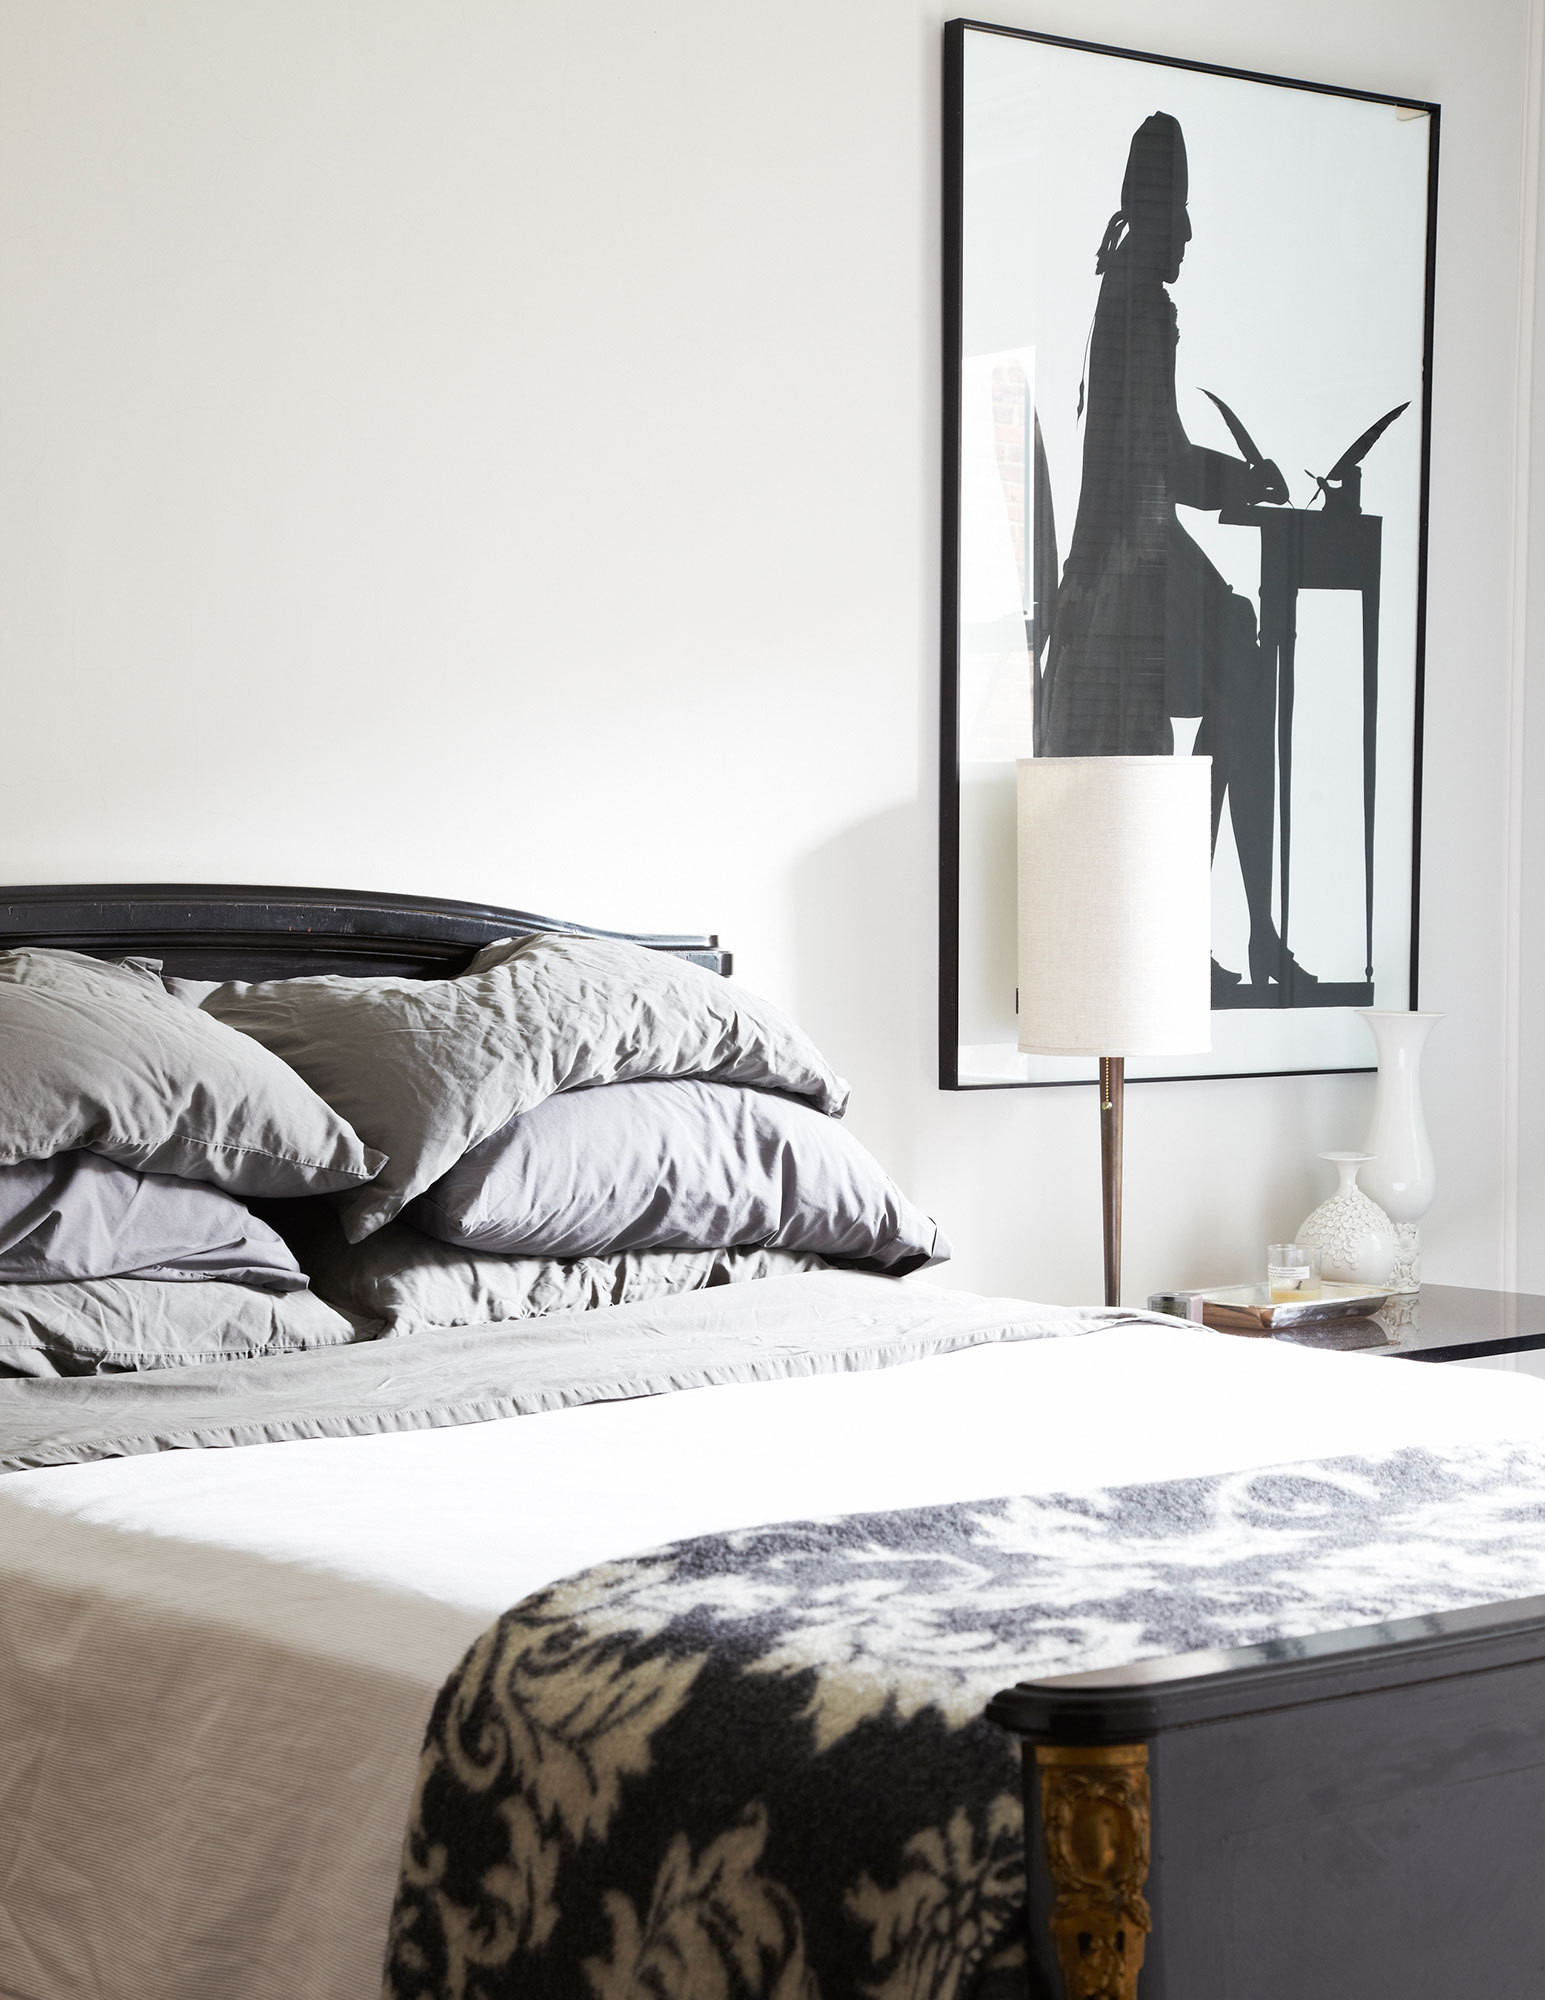 Klein painted the black-and-white silhouette in the bedroom.